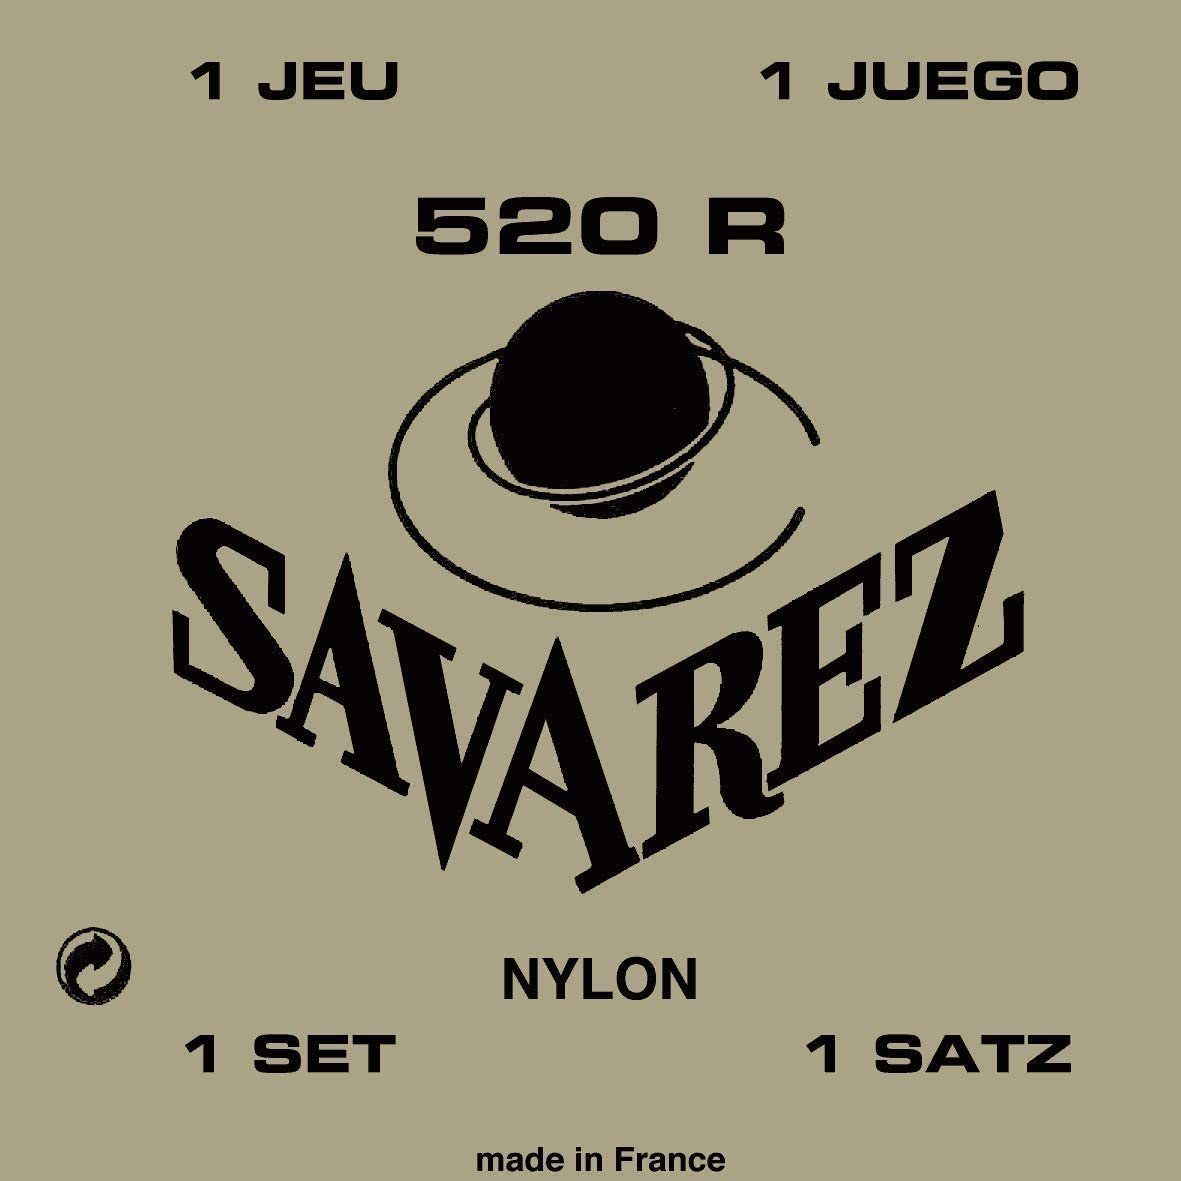 Rectified Nylon High Tension Classical Guitar Strings Savarez Improved. Improved - None.